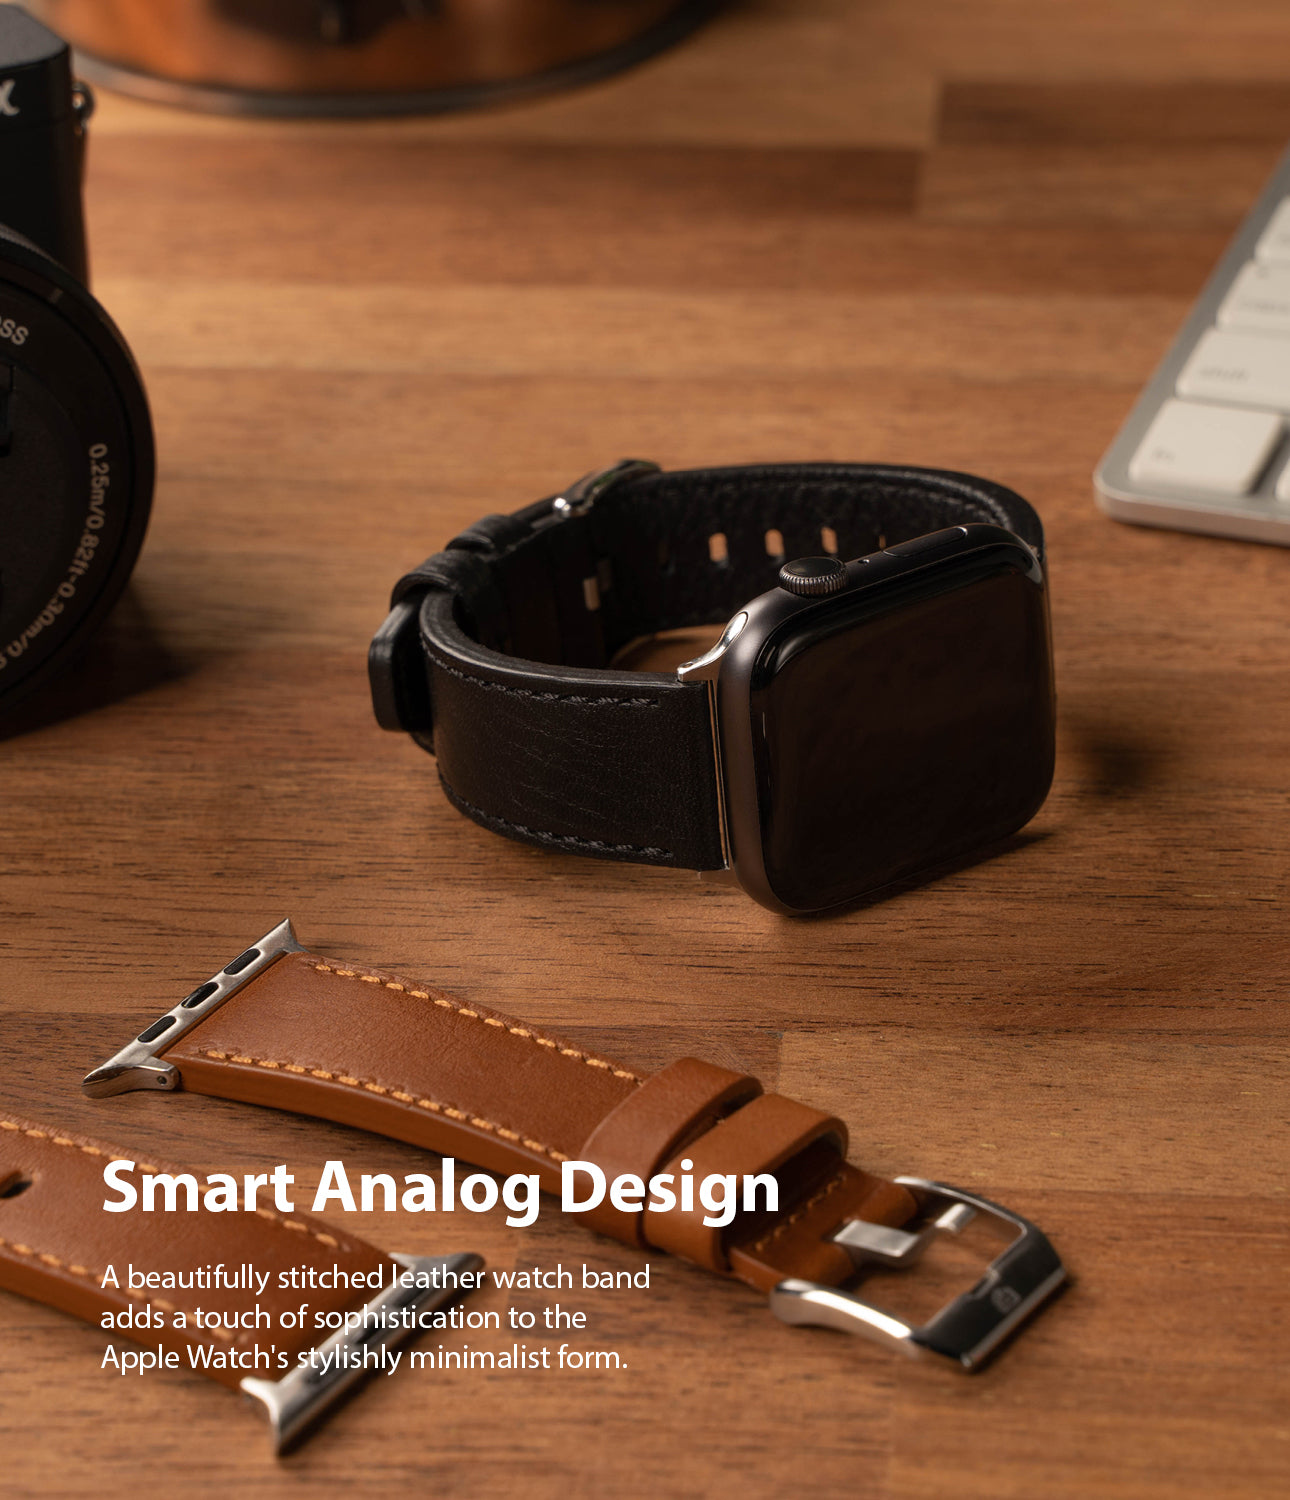 smart analog design - stitched leather watch band